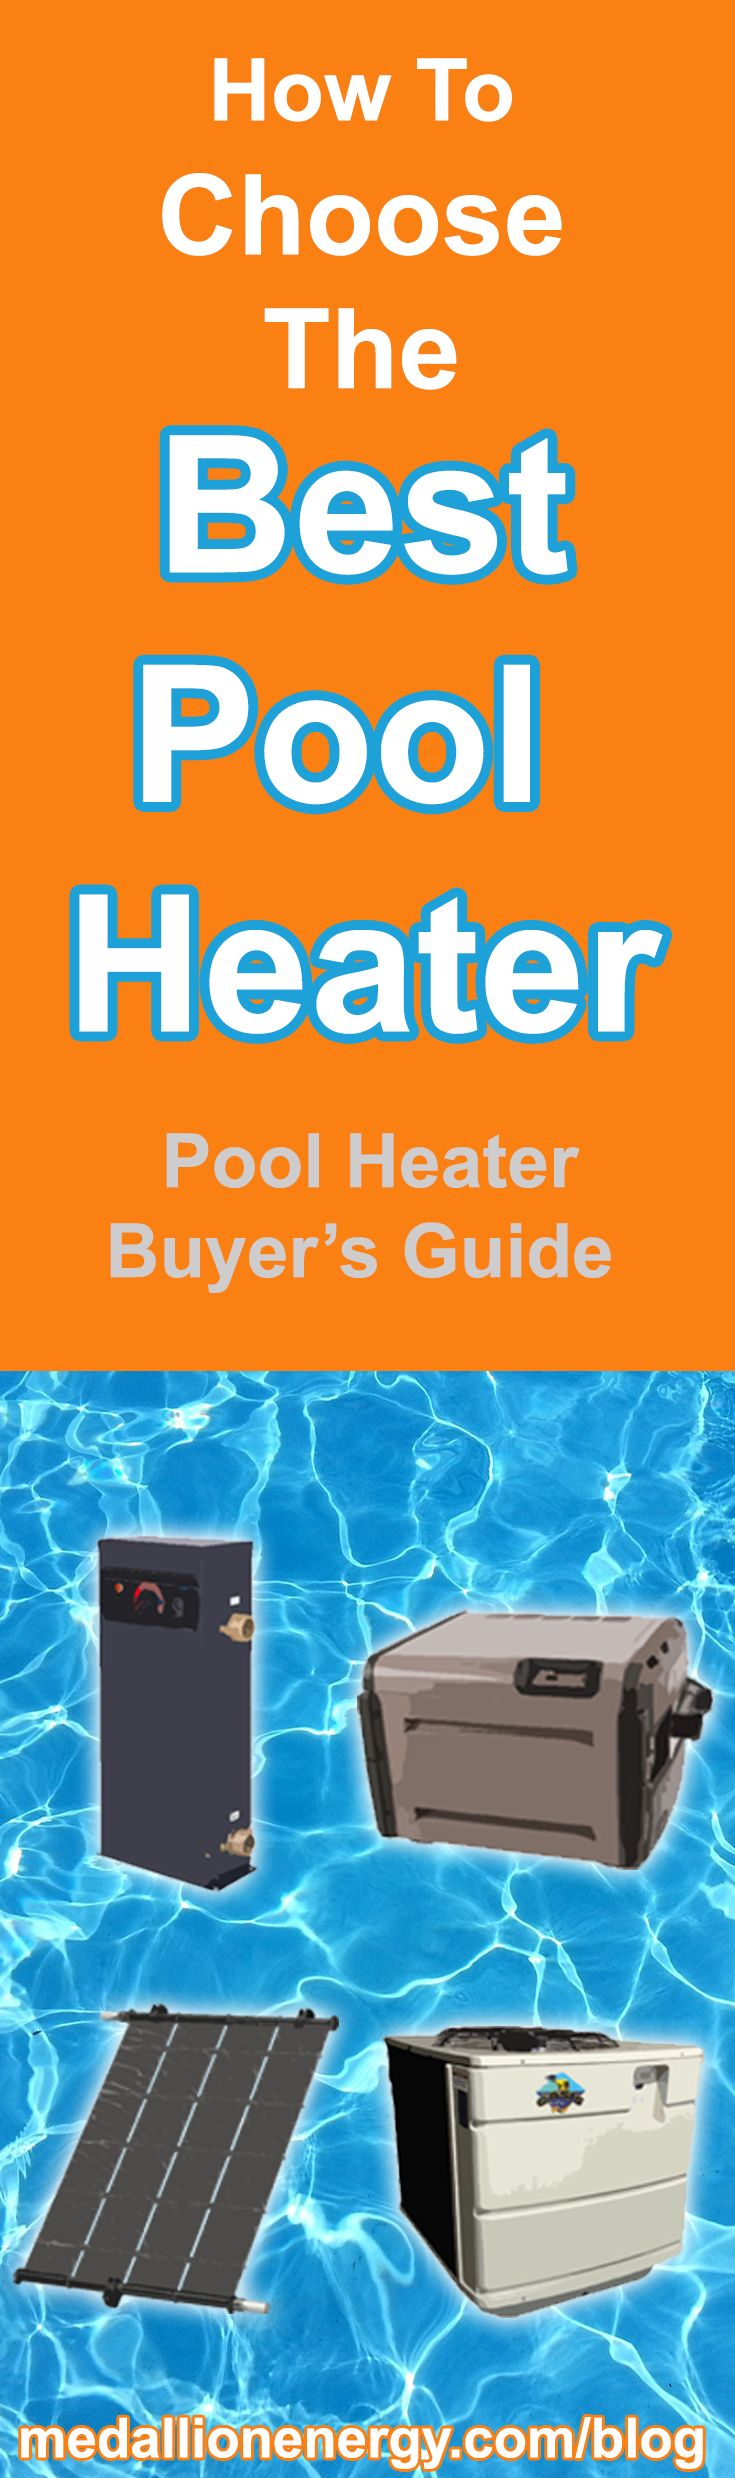 As a pool owner, you have 4 options for heating your pool. Gas heaters, Electric Resistance heaters, Pool Heat Pumps, and Solar heaters. In this post we discuss how each works, purchase and operation costs, and the unique pros and cons of each option. And by the end, you should have a solid idea of which option is the best pool heater for you.   Read More: http://www.medallionenergy.com/blog/choose-best-pool-heater-2016/